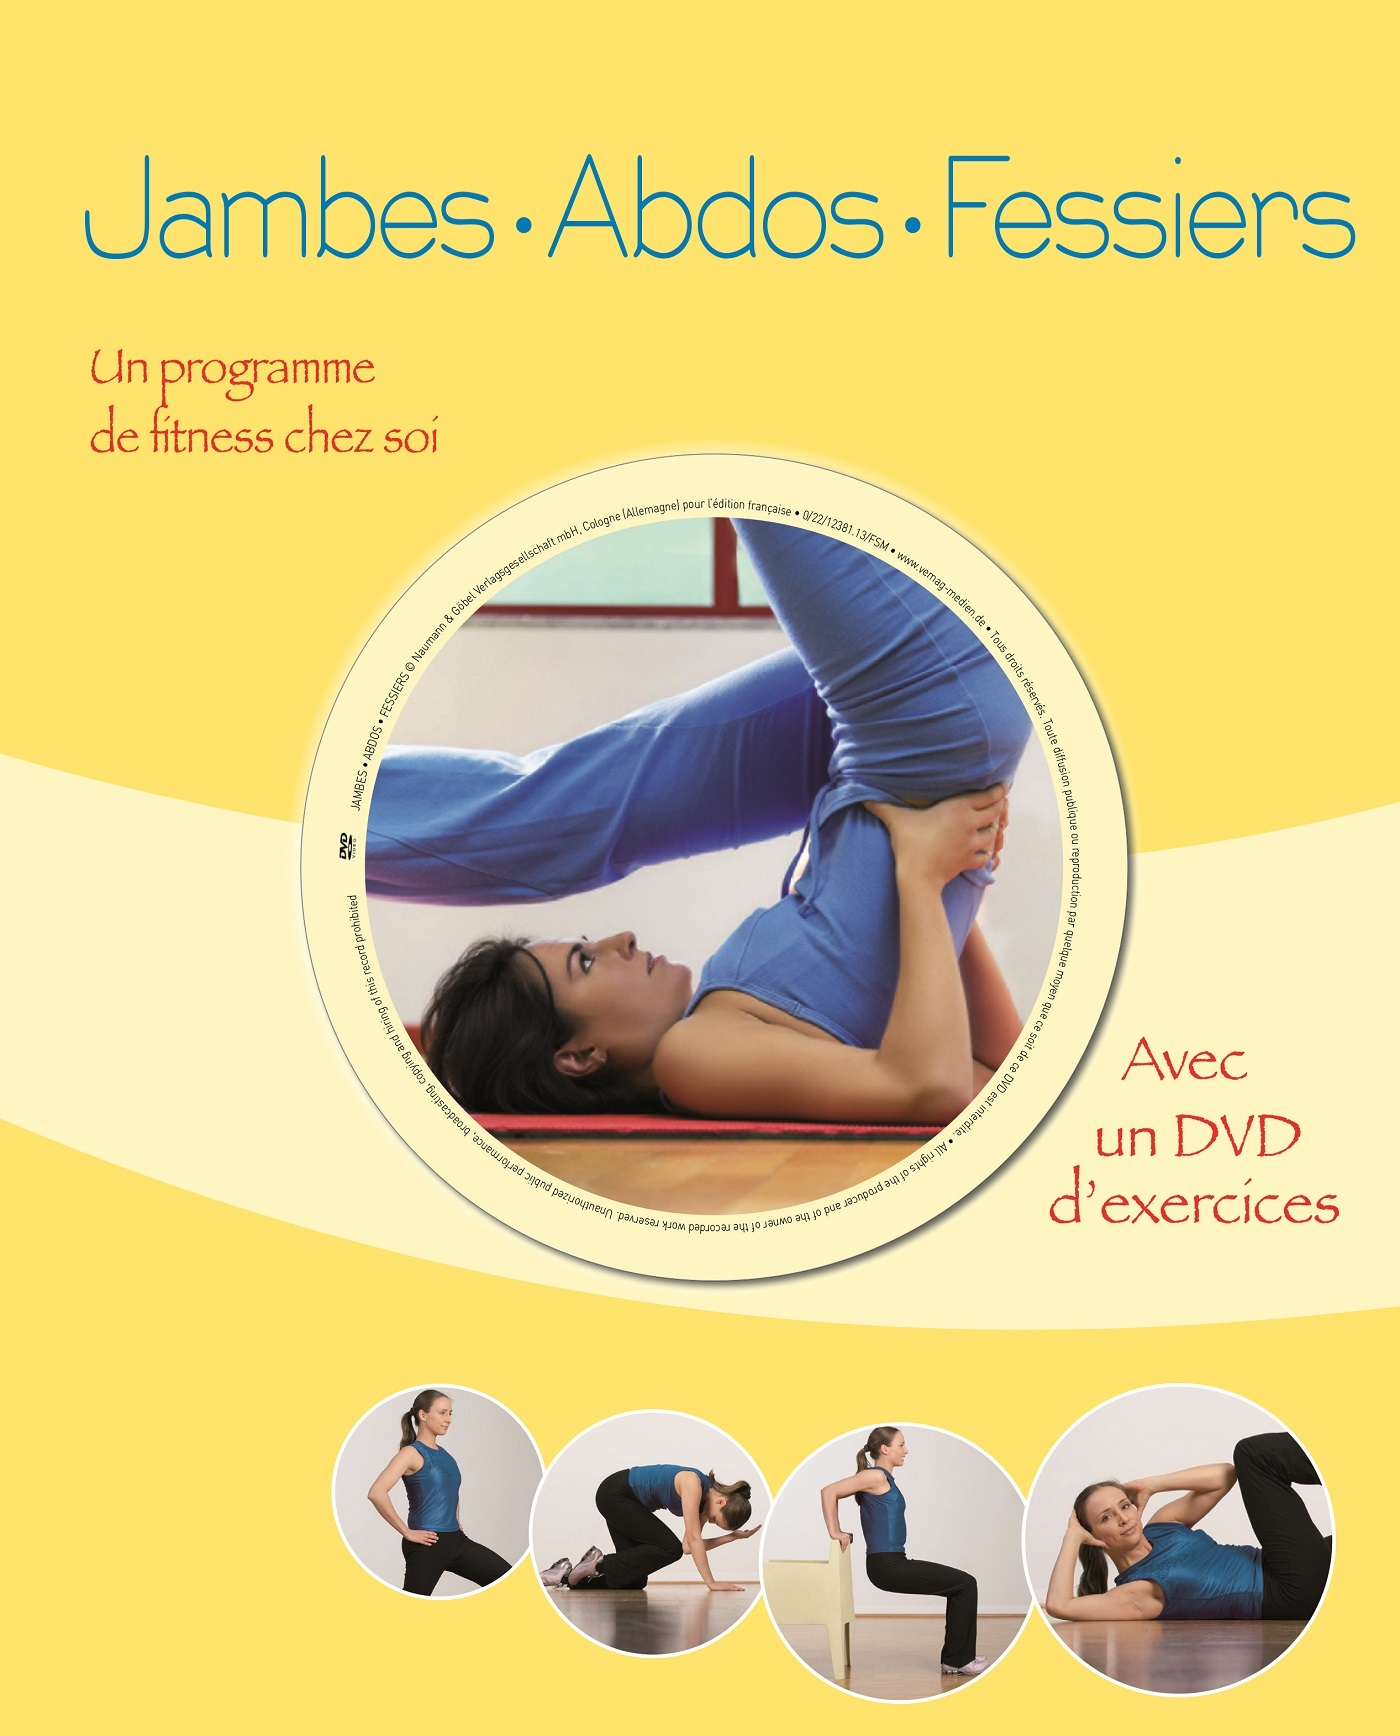 JAMBES ABDOS FESSIERS